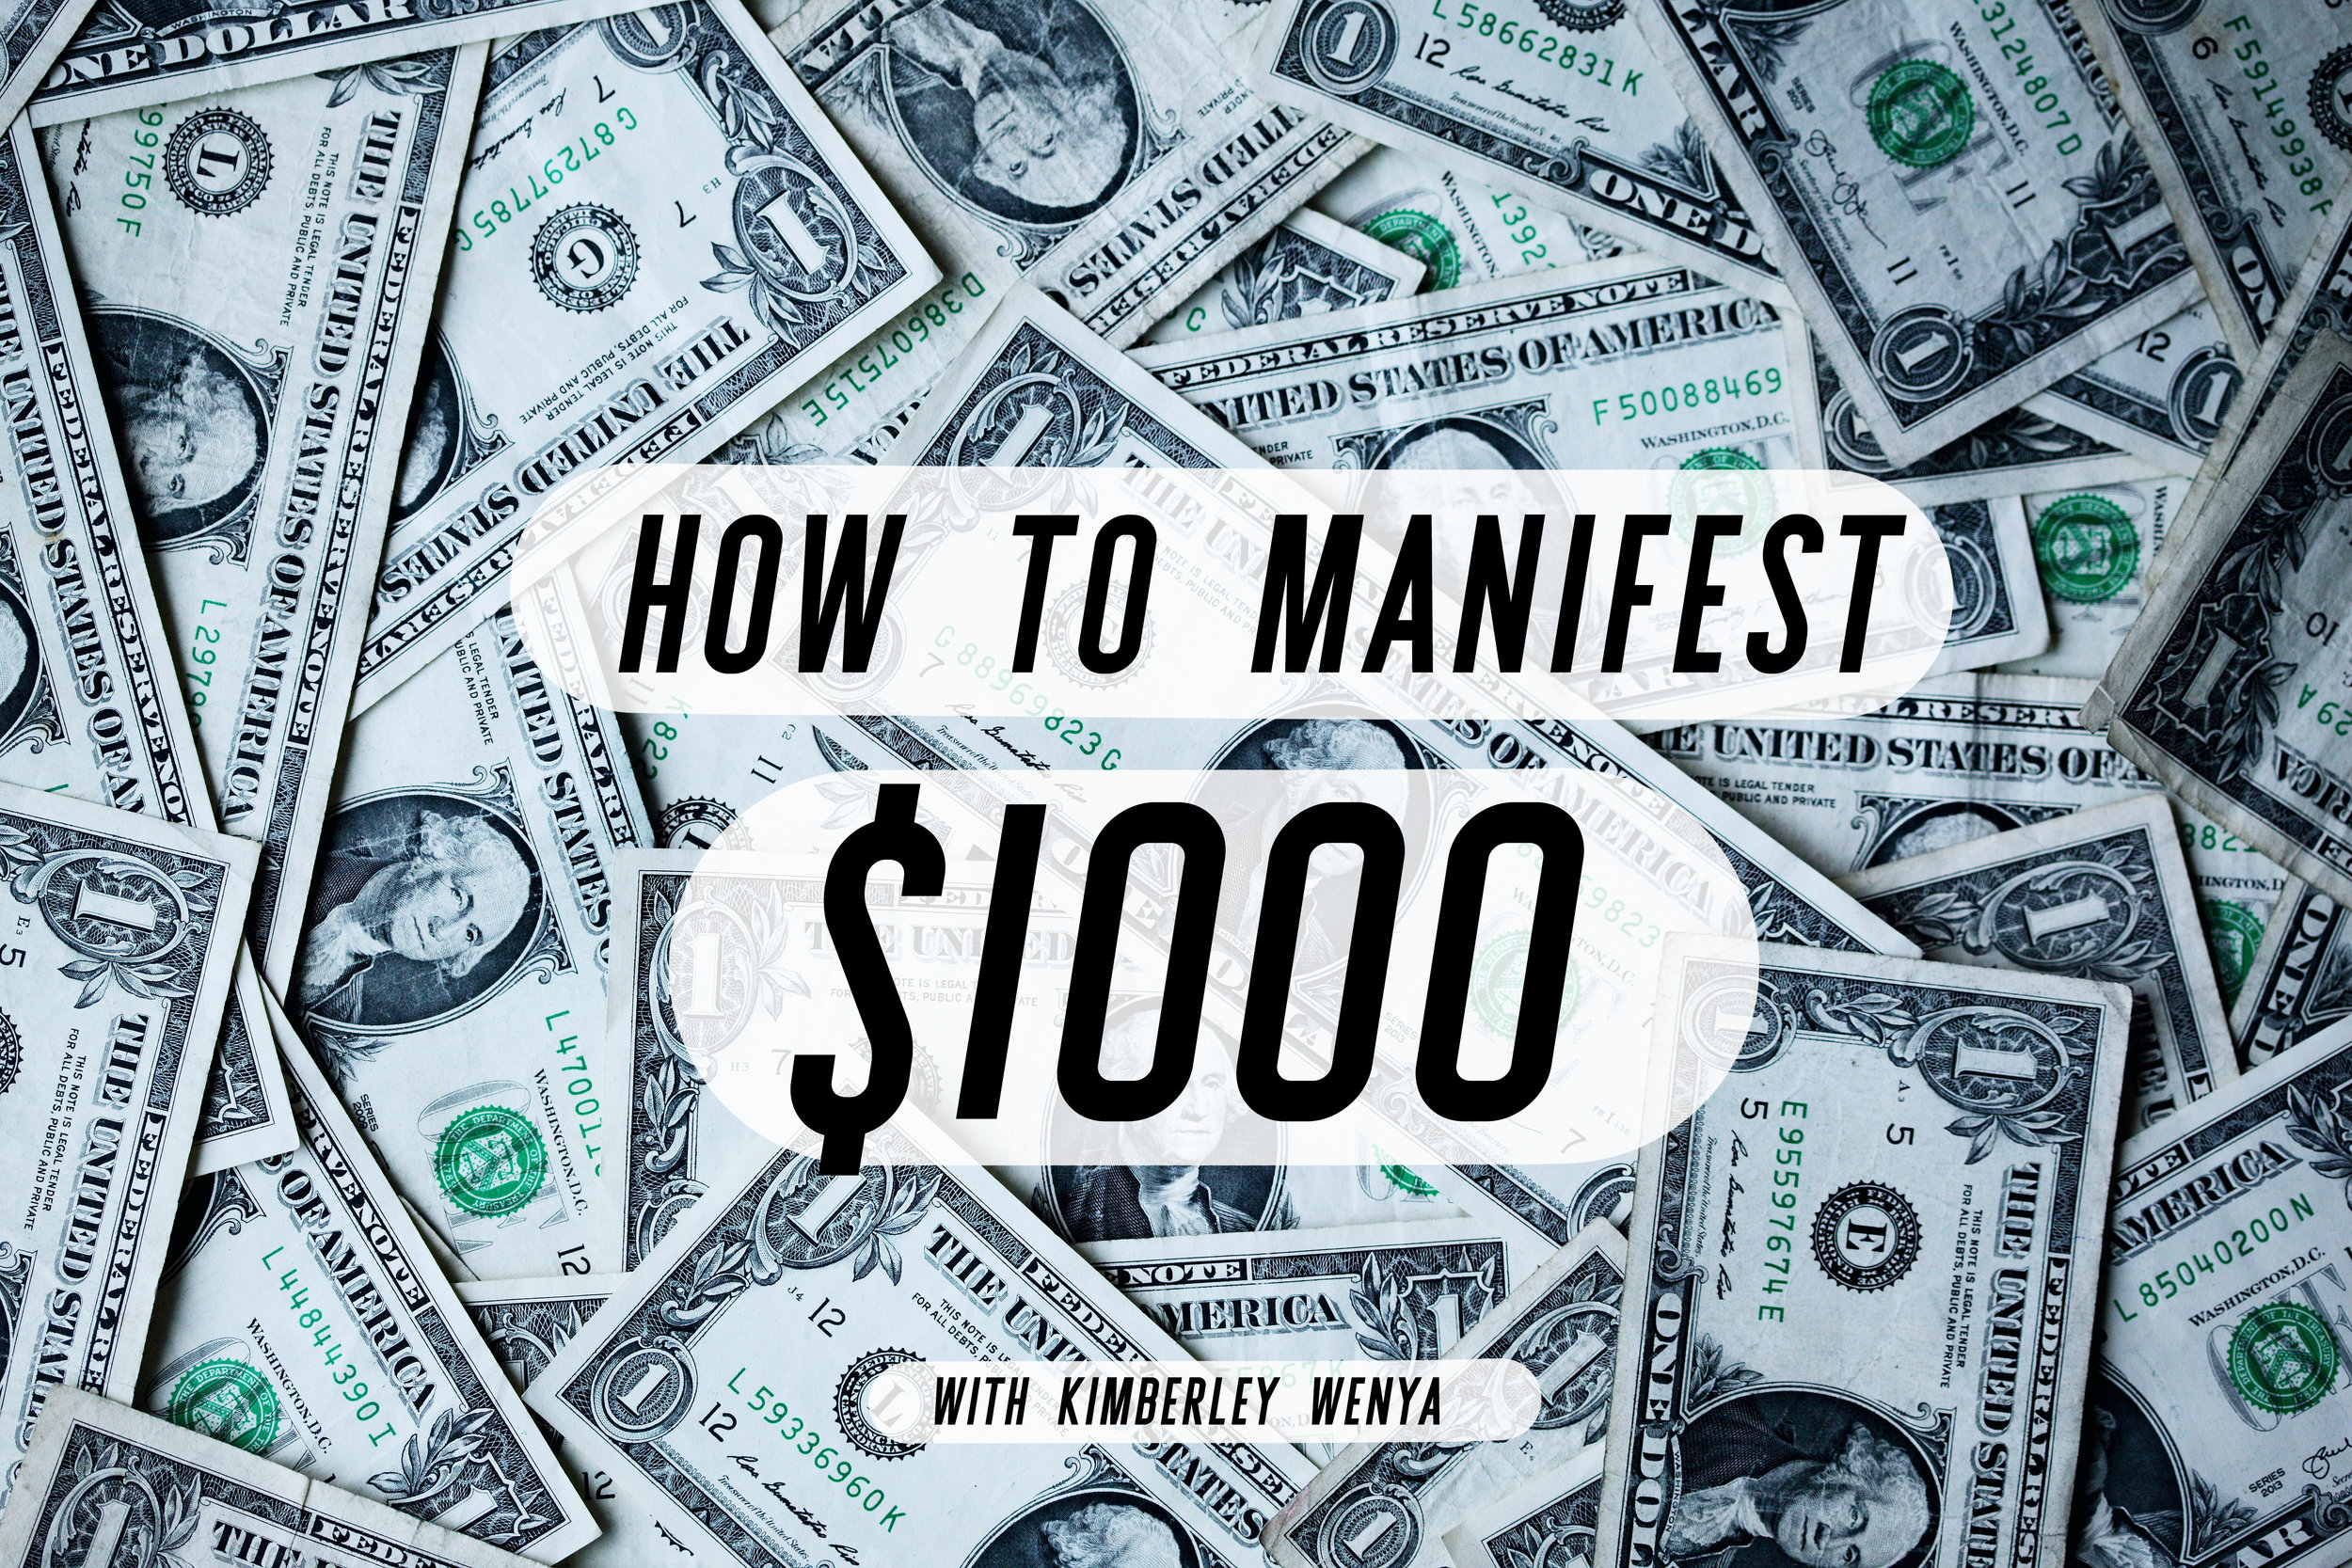 how-to-manifest-$1000